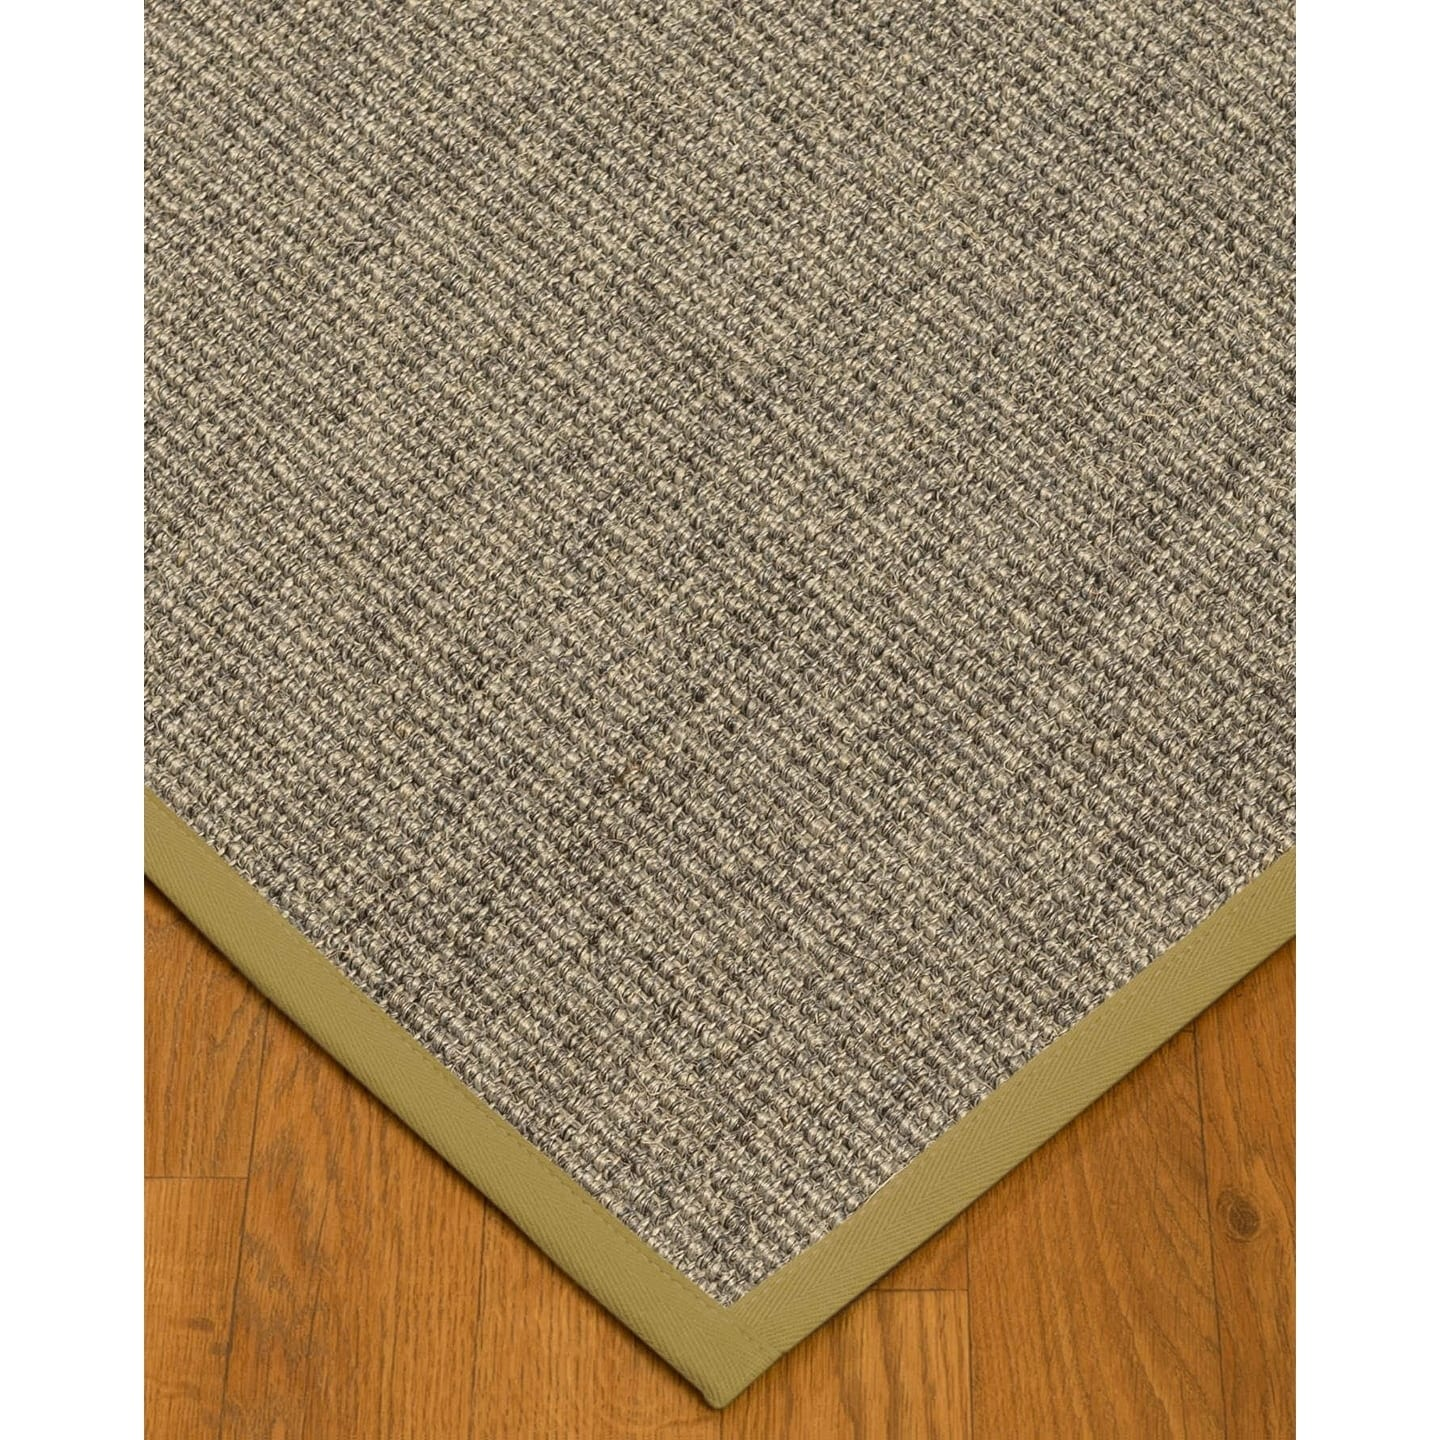 Naturalarearugs Posada Sisal Carpet Runner Made In Usa Natural Border Free Shipping Today Com 20611620